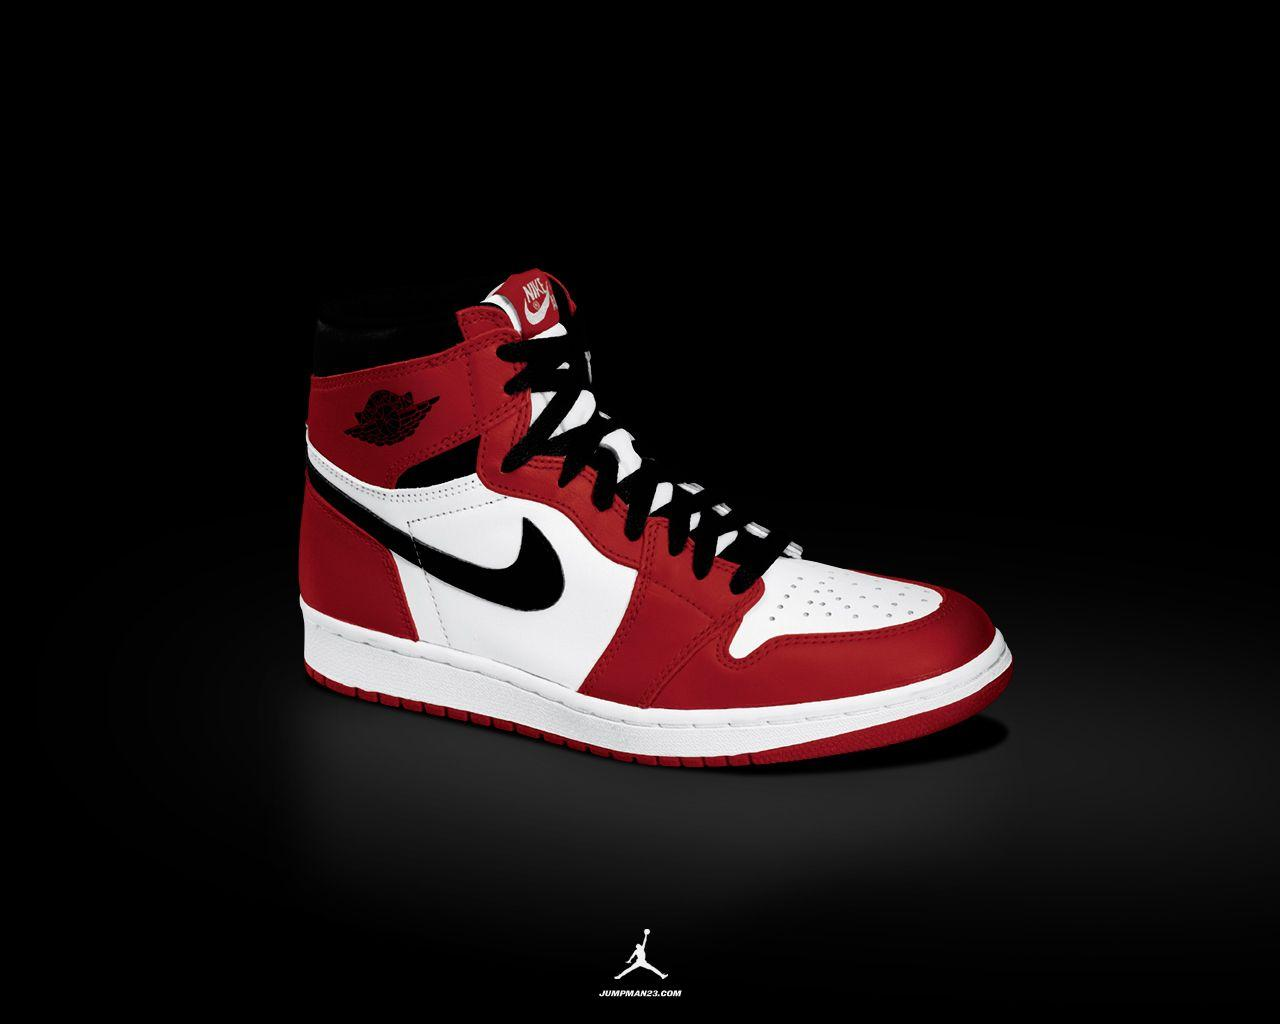 Nike Shoes Wallpapers Hd Wallpaper Cave